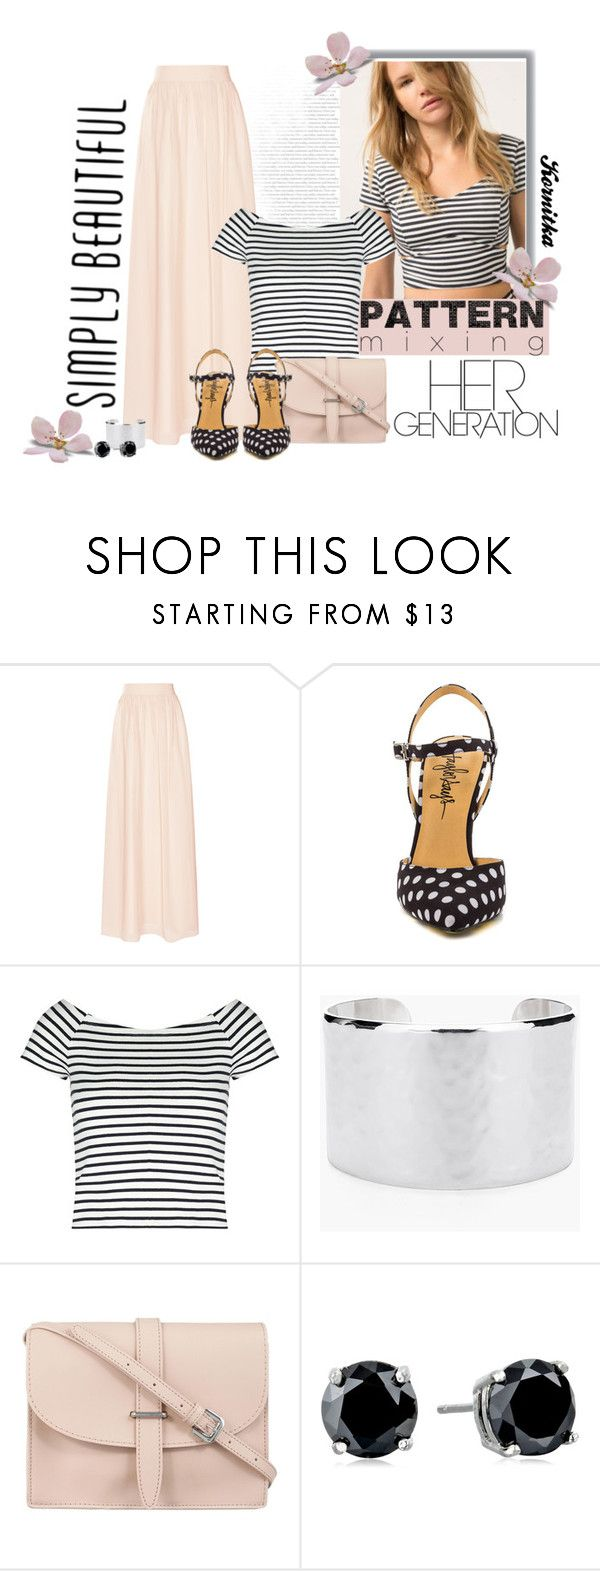 """nr 195 / Head-to-Toe Pattern Mixing"" by kornitka ❤ liked on Polyvore featuring Bershka, Reiss, TaylorSays, Lipsy, Chico's, M.N.G and CZ by Kenneth Jay Lane"